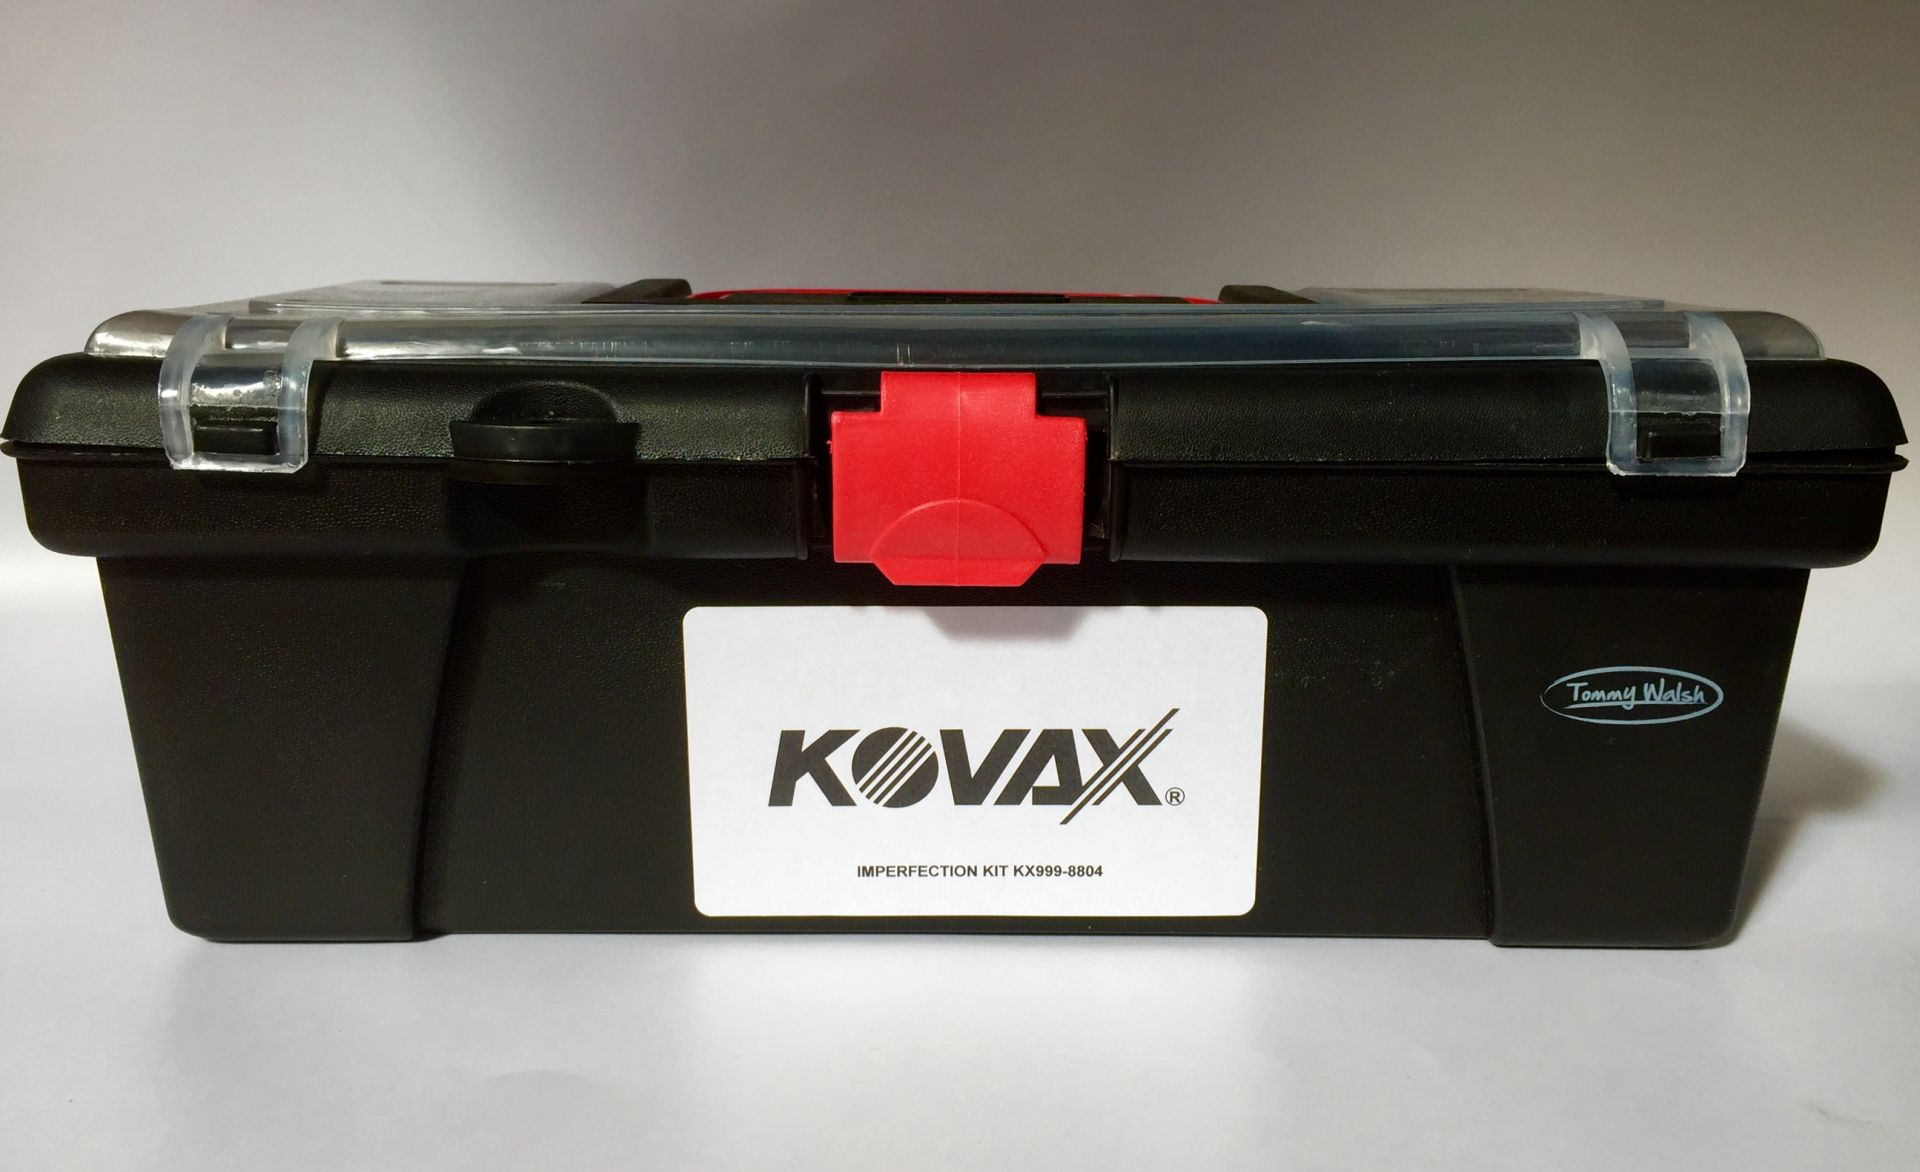 KOVAX Imperfection kit